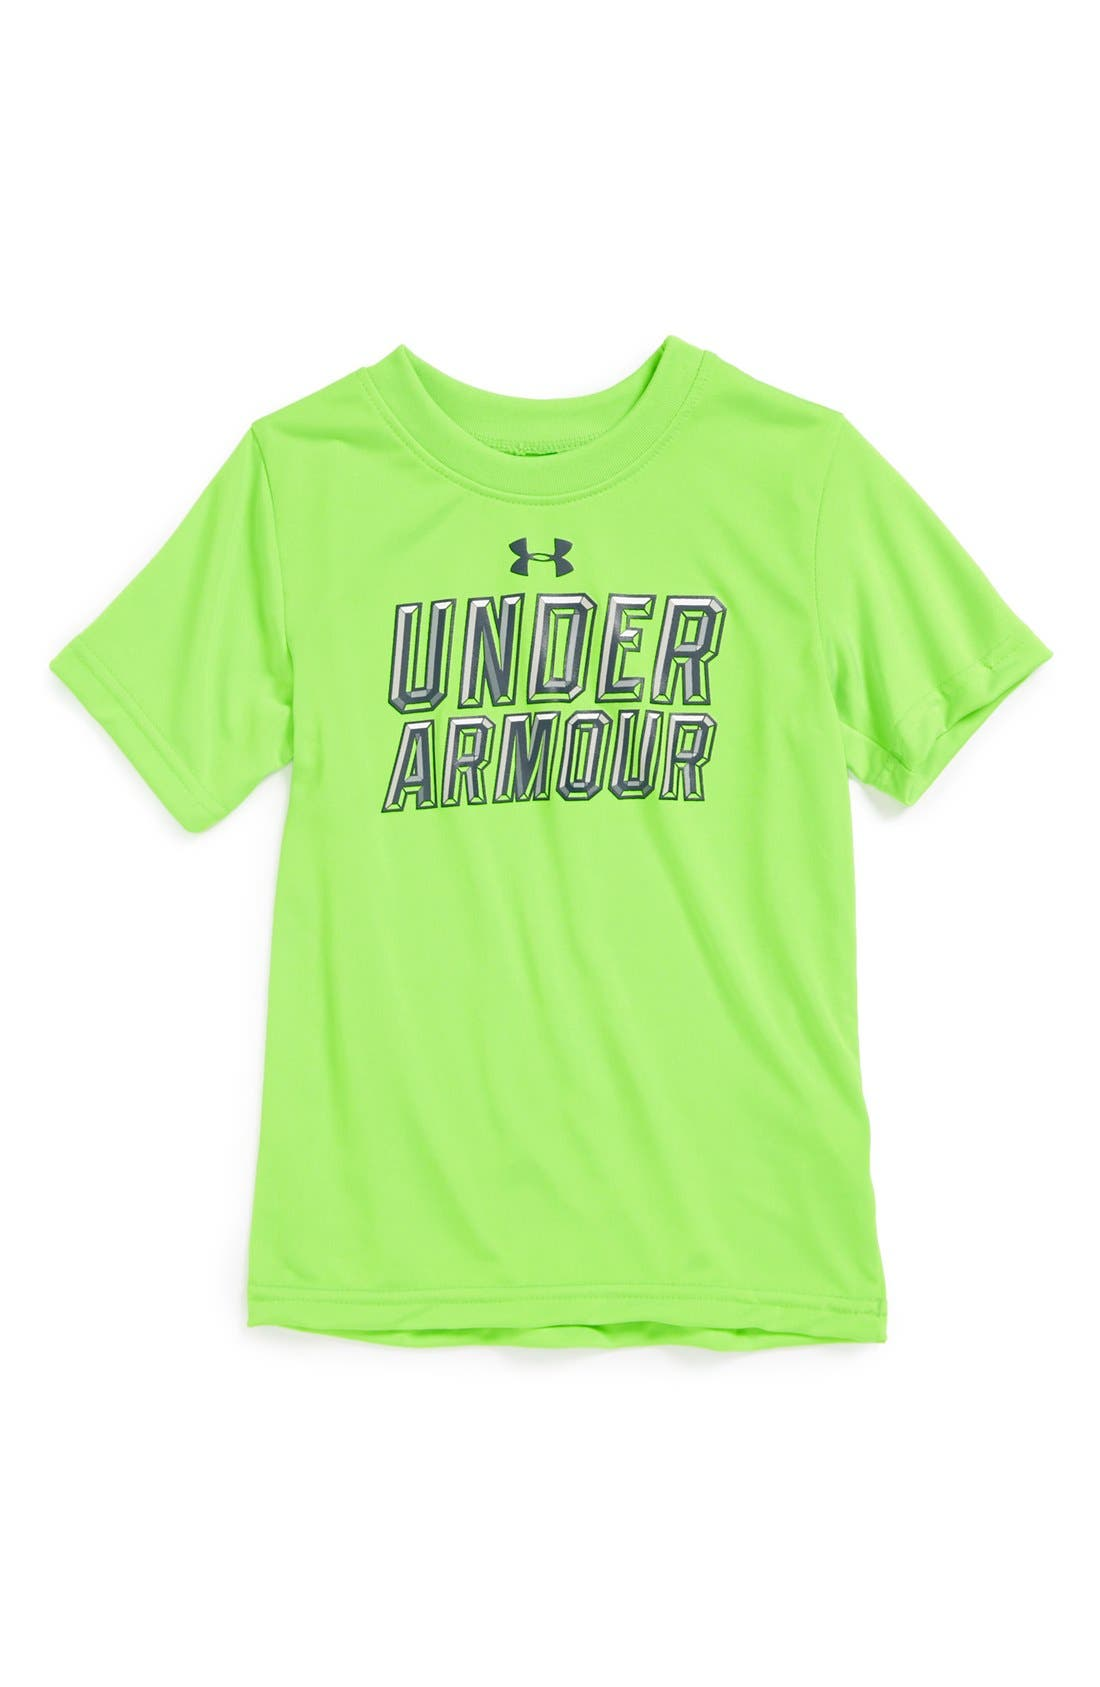 Alternate Image 1 Selected - Under Armour 'Stained Glass' T-Shirt (Toddler Boys)